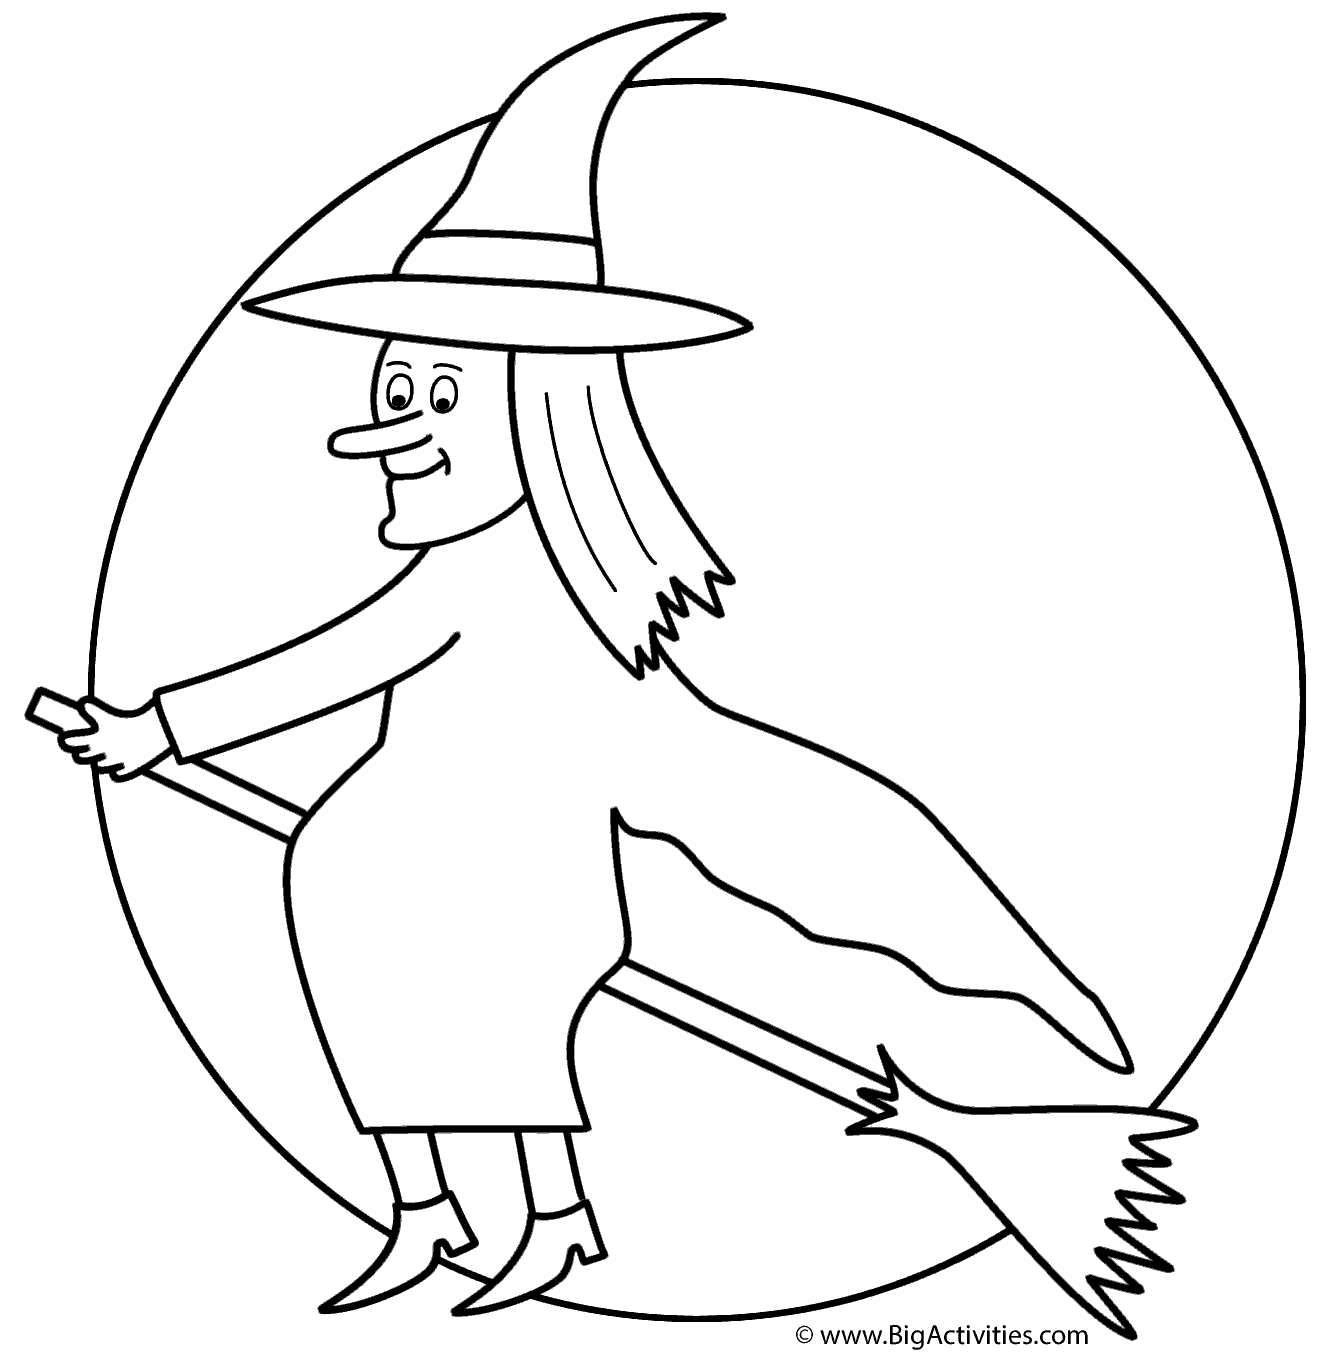 100 ideas full moon coloring pages on gerardduchemann com